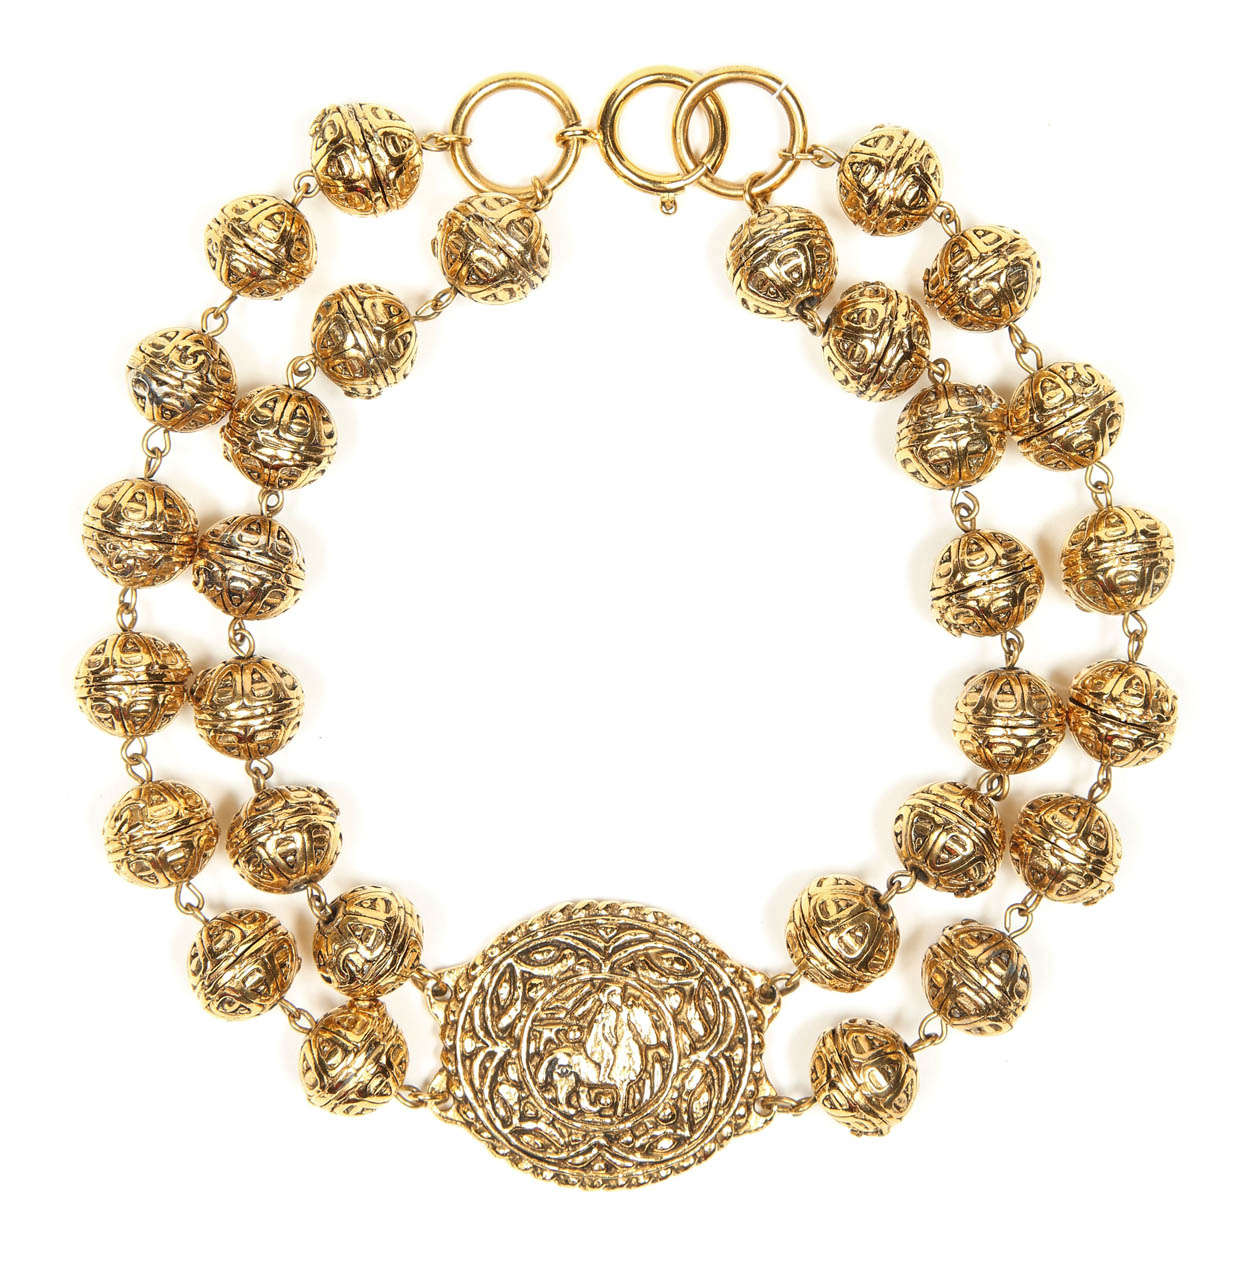 Chanel Byzantine Style Beaded Medallion Necklace For Sale 2